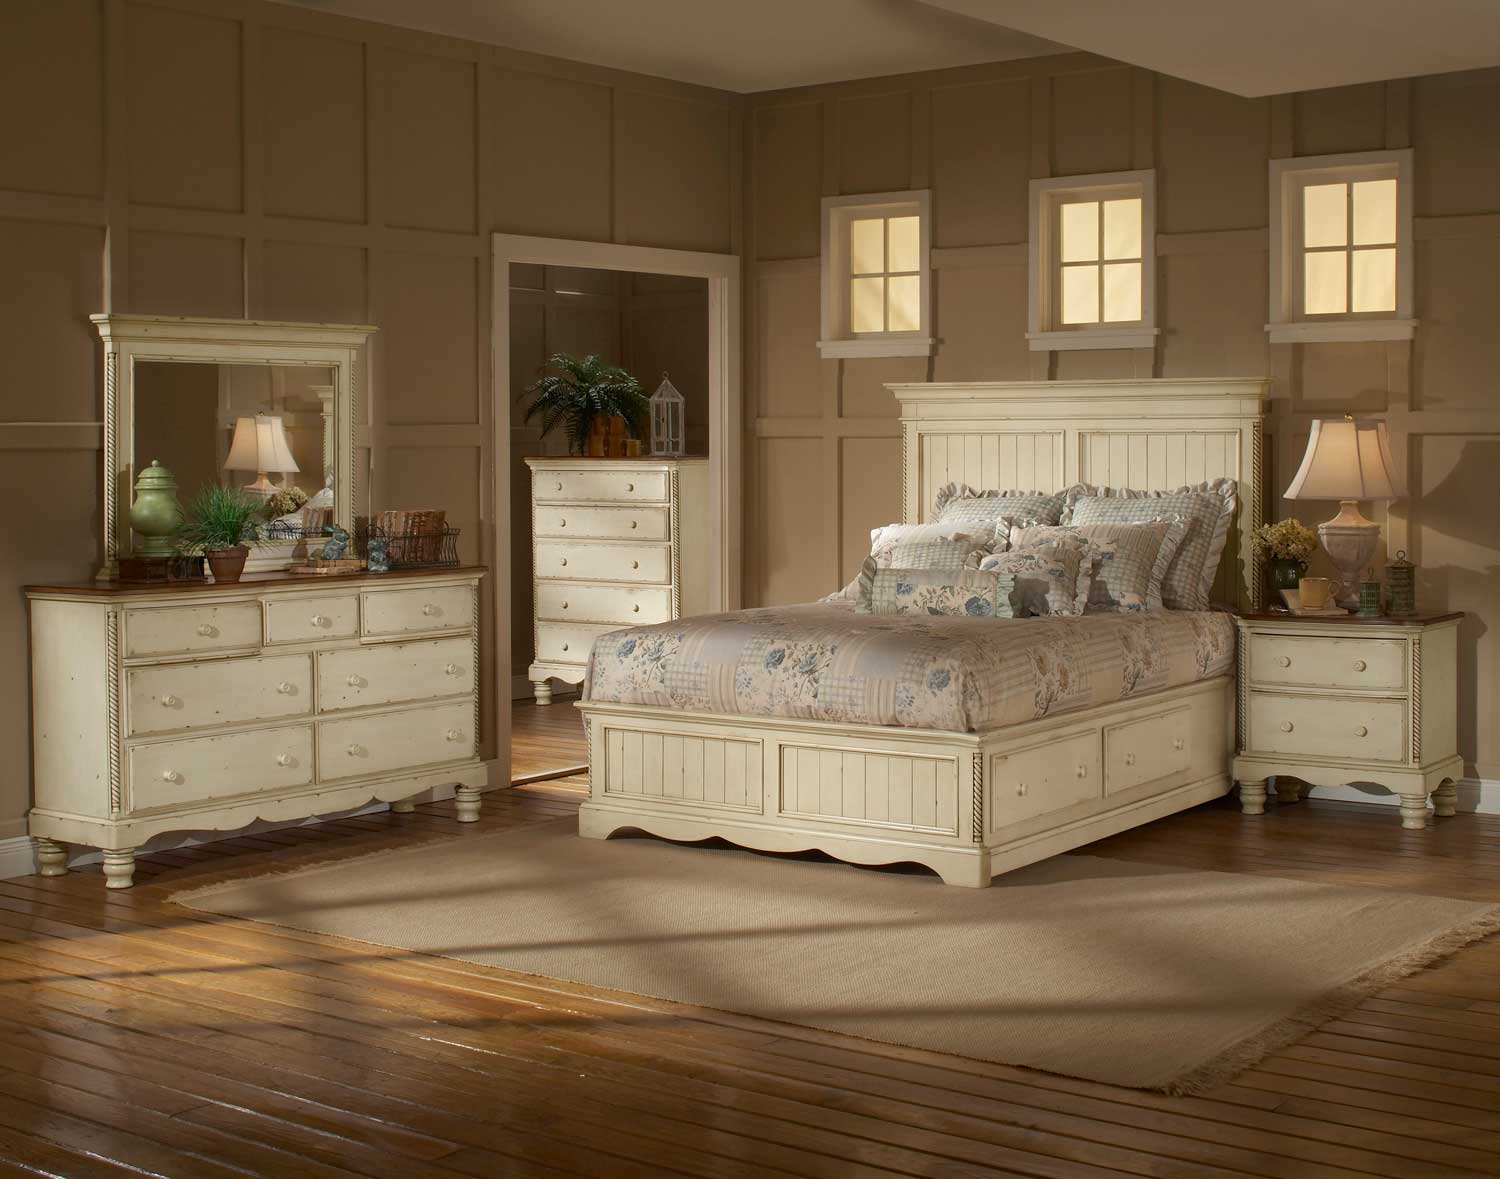 english style bedroom furniture descargas mundiales com bedroom top tropical style sets furniture cottage style white bedroom furniture best bedroom ideas 2017